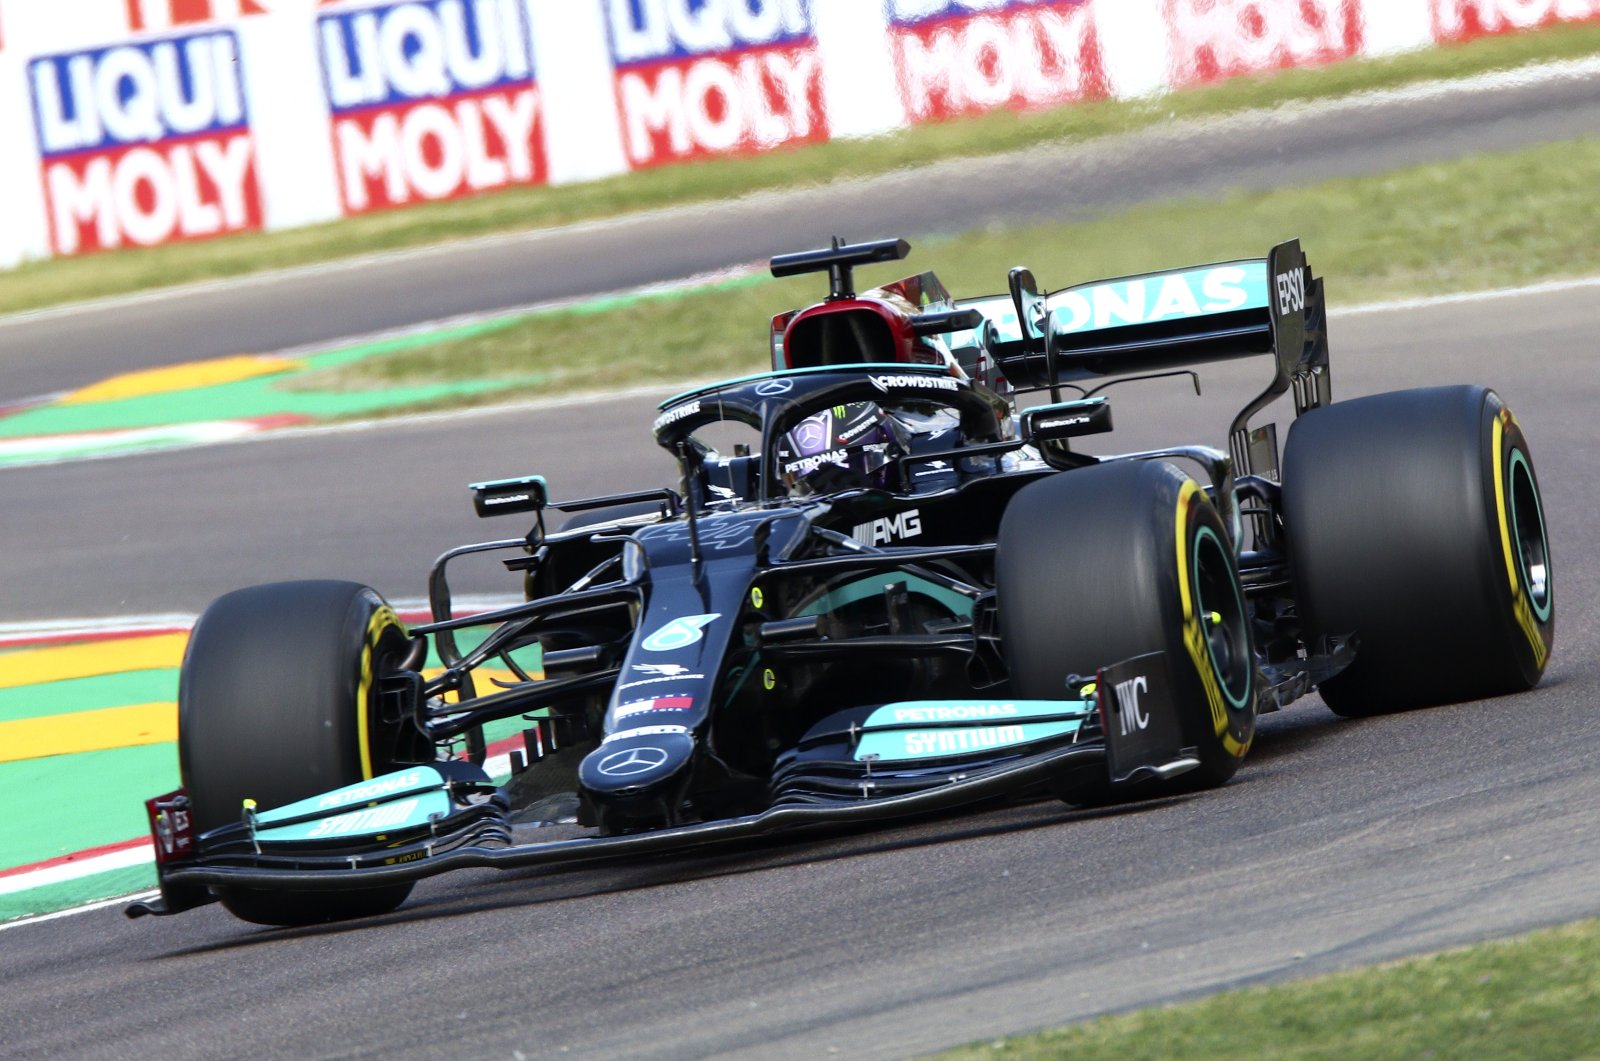 British Formula One driver Lewis Hamilton of Mercedes-AMG Petronas in action during the second practice session of the Formula One Grand Prix Emilia Romagna at Imola race track, Italy, April 16, 2021. (EPA Photo)